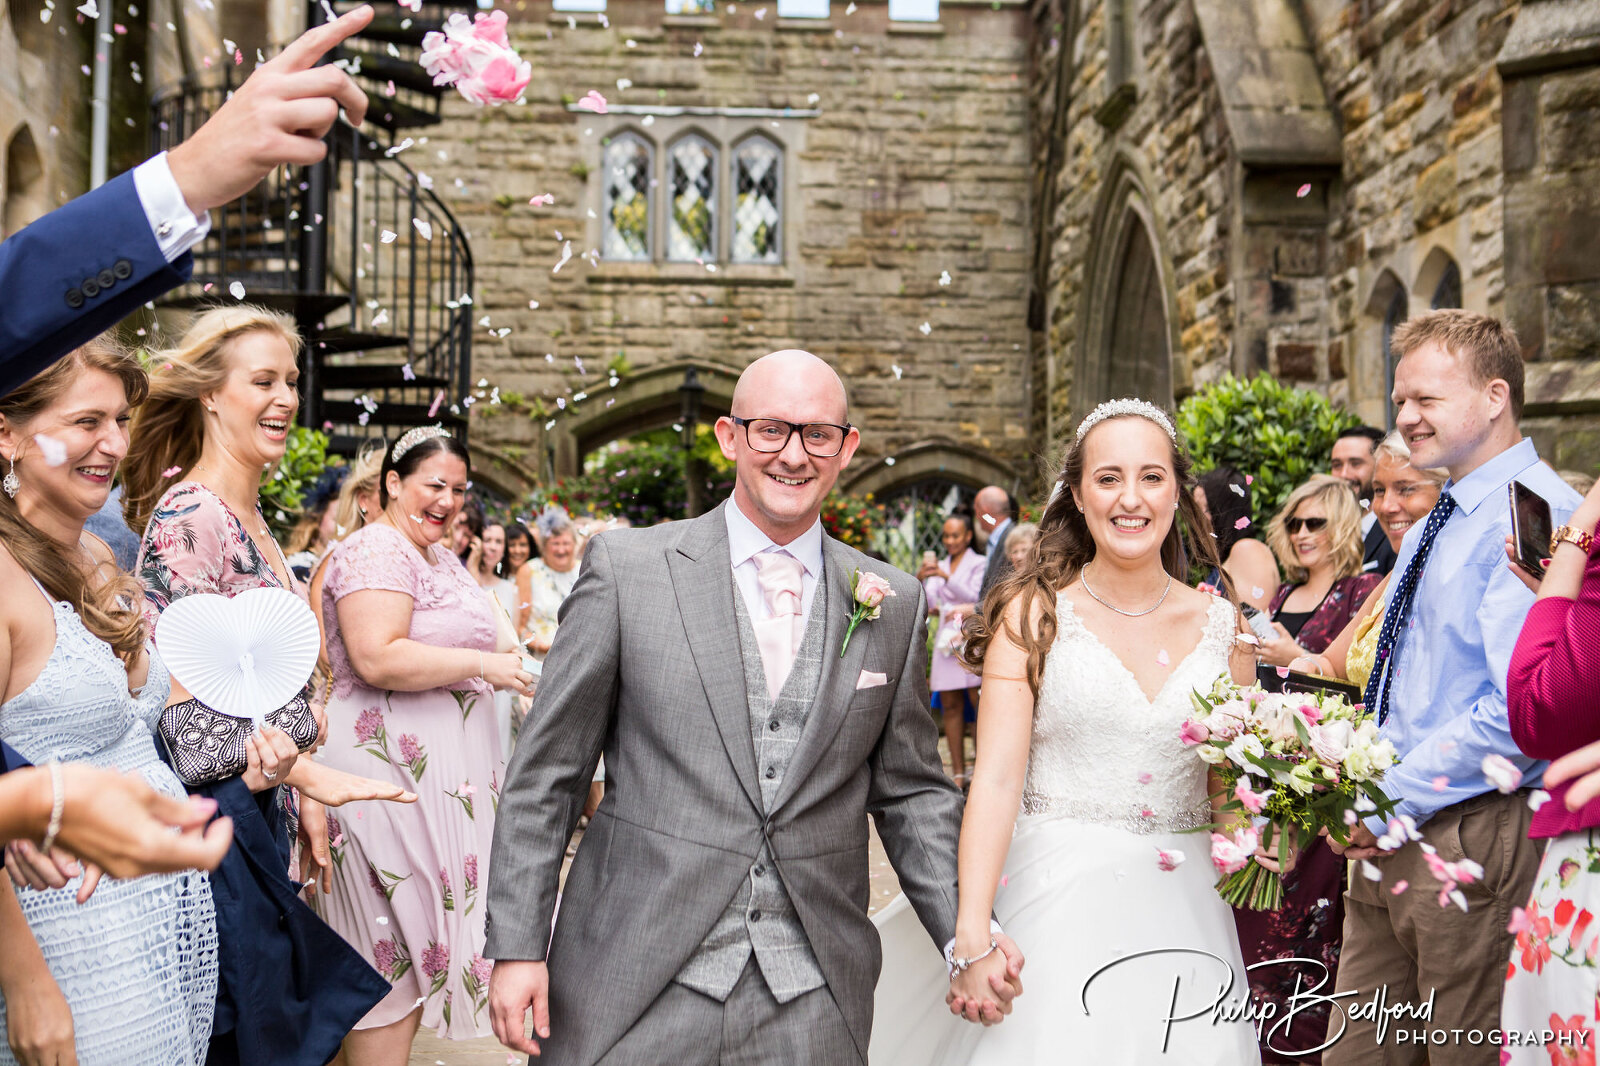 Relaxed Wedding Photograph of Bride & Groom Walking through hotel Grounds throwing Confetti